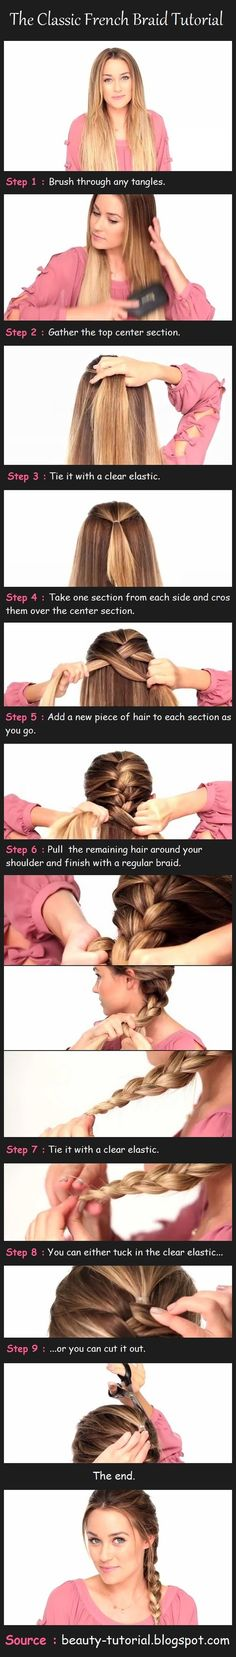 Omw! Where has this tutorial been all my life!?